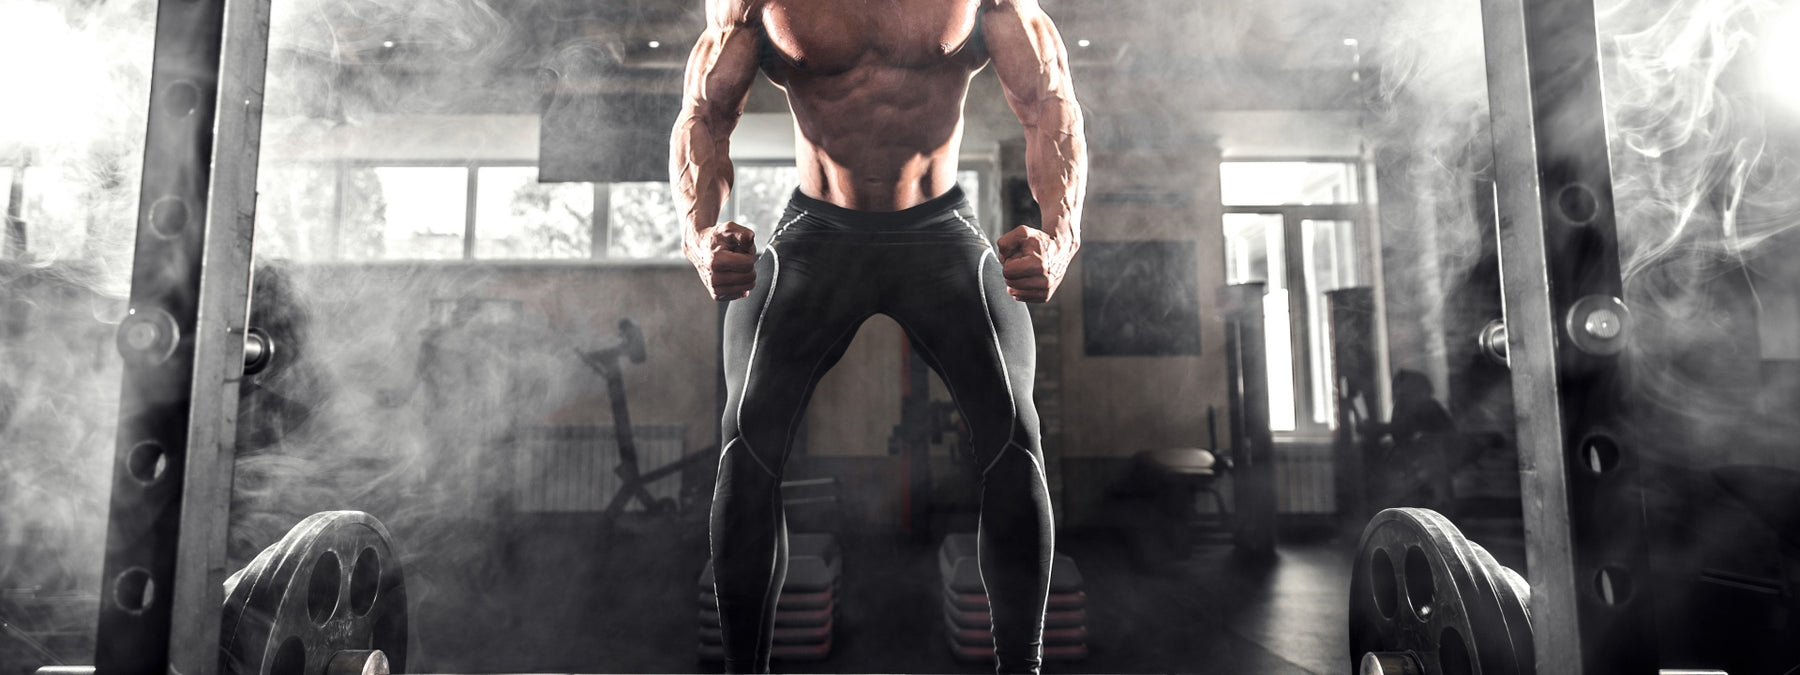 9 Reasons Not to Skip Leg Day Workouts